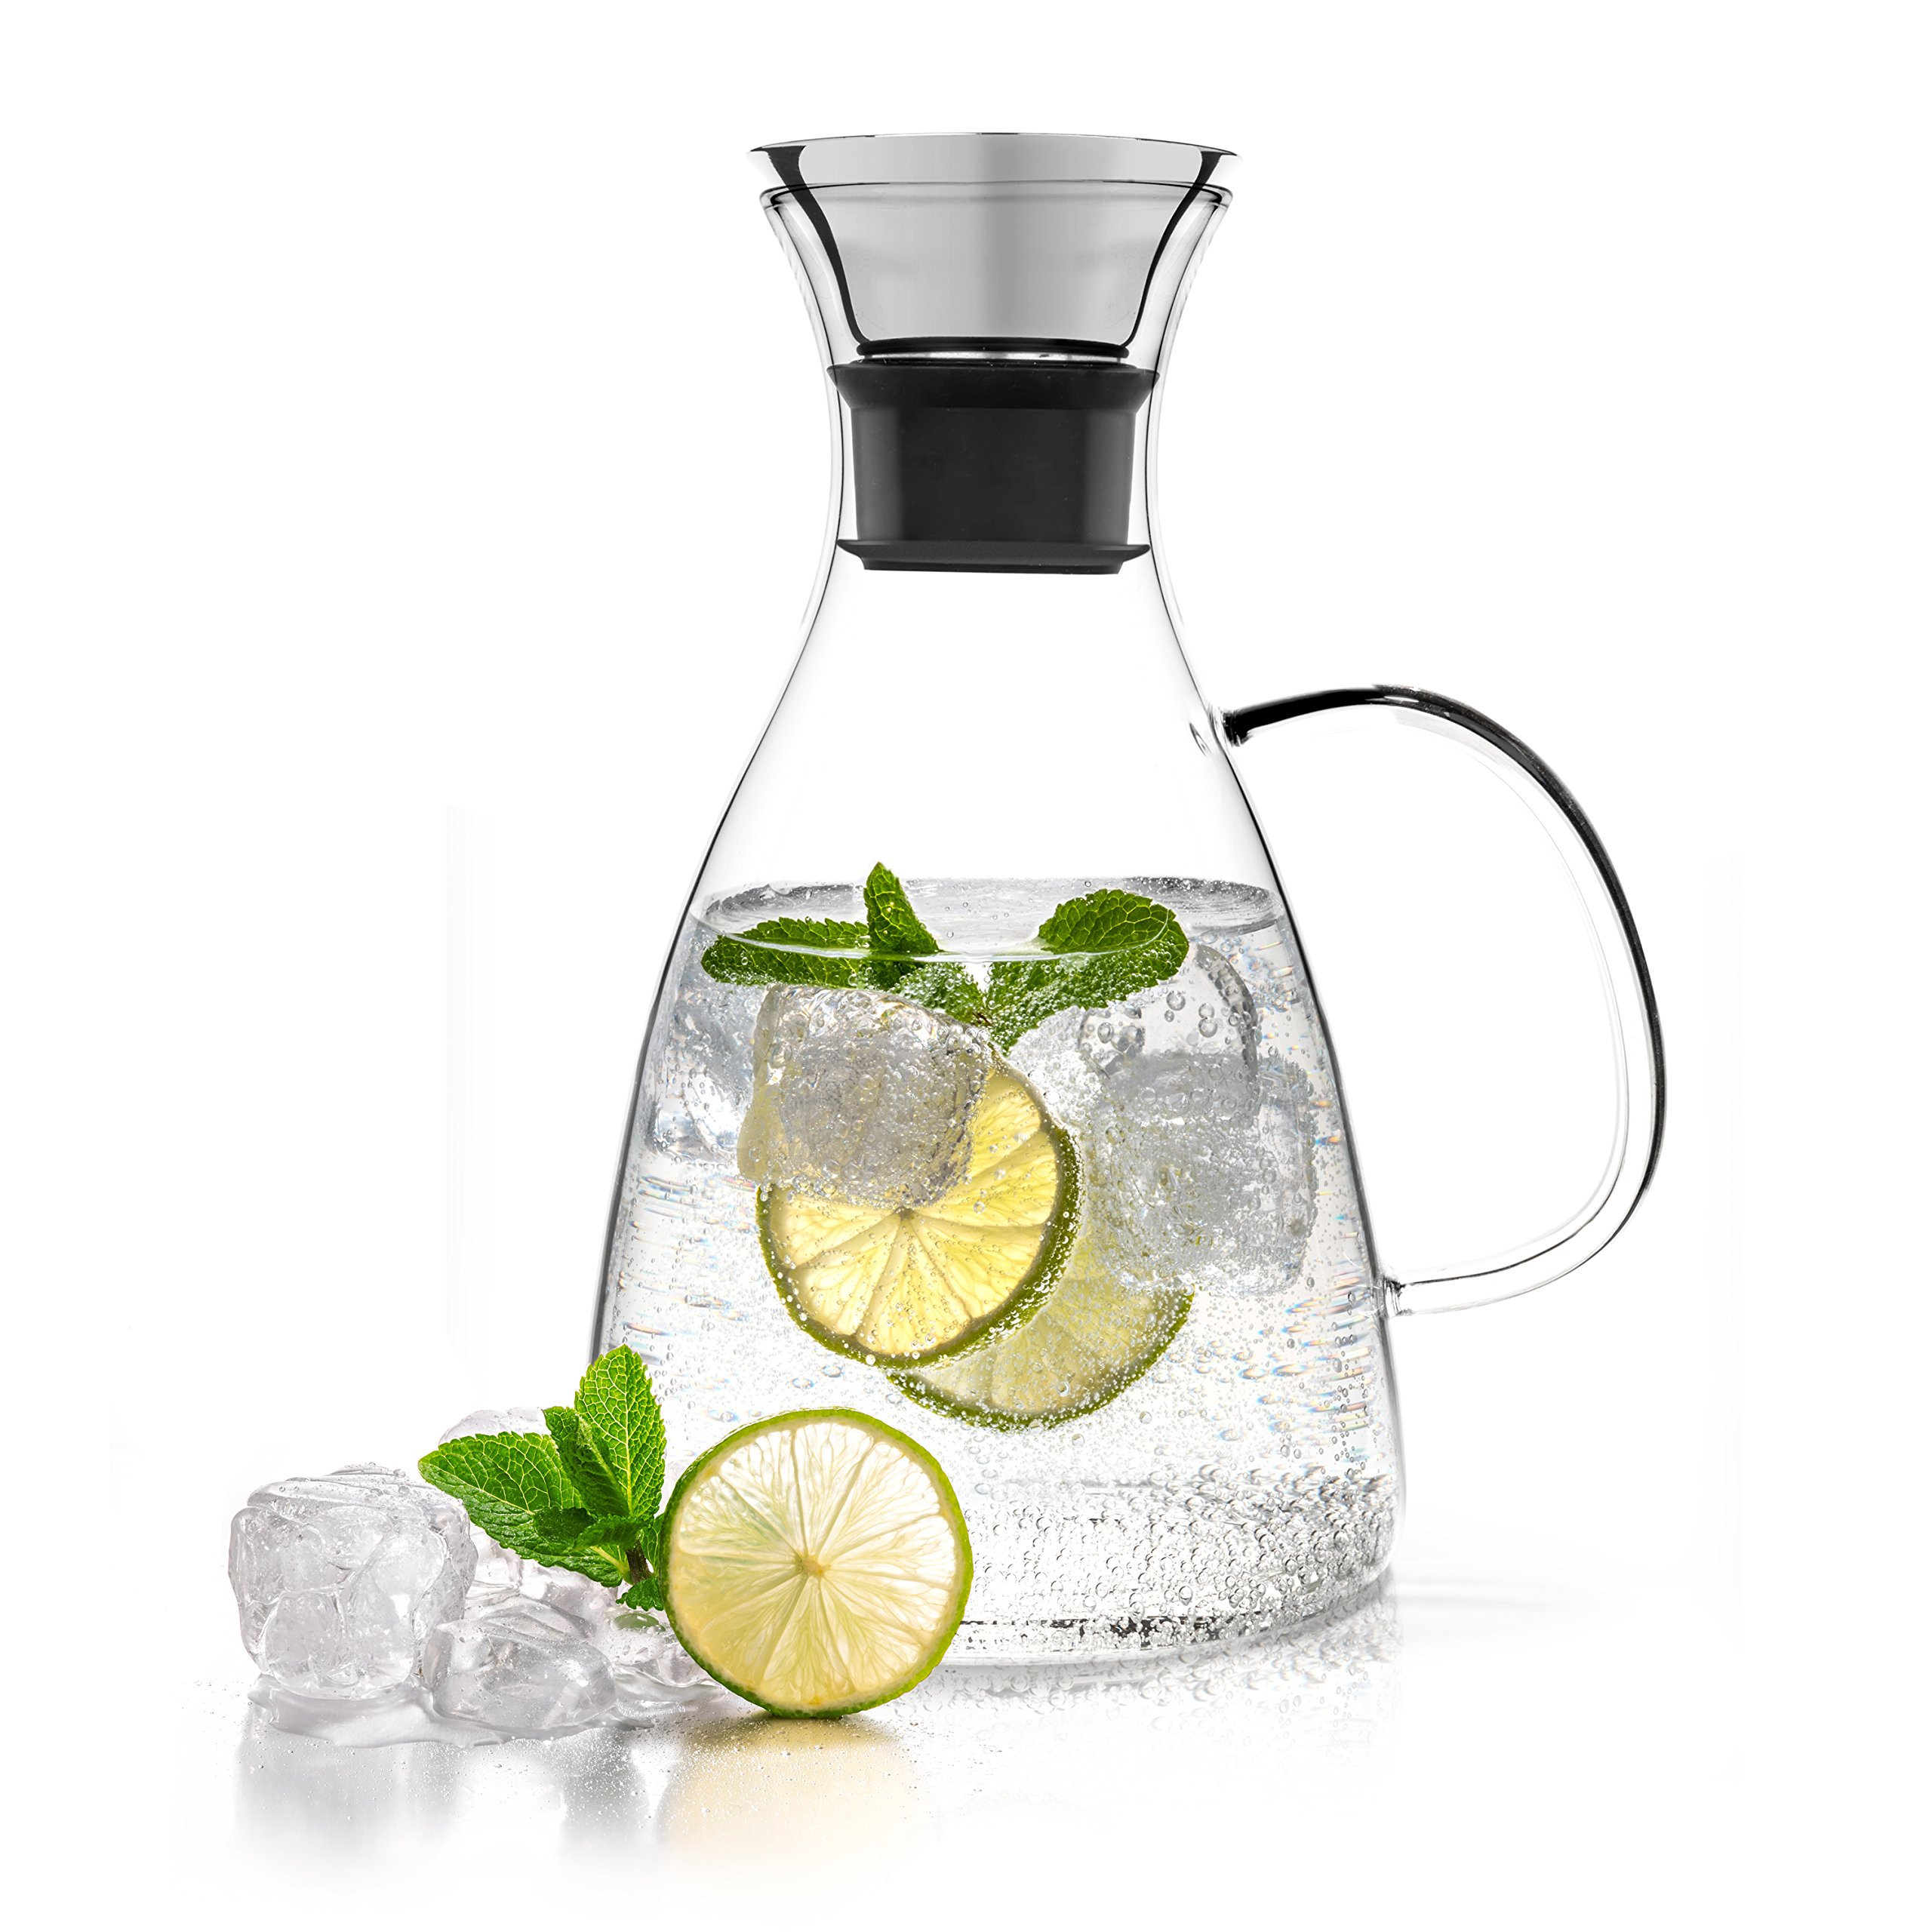 Tealyra - Large Glass Carafe 56-ounce - Drip-free - Stovetop Safe - Borosilicate Water Pitcher Jug Infuser - Hot or Iced Tea Juice Beverage - Decanting Serving Wine - 1600ml